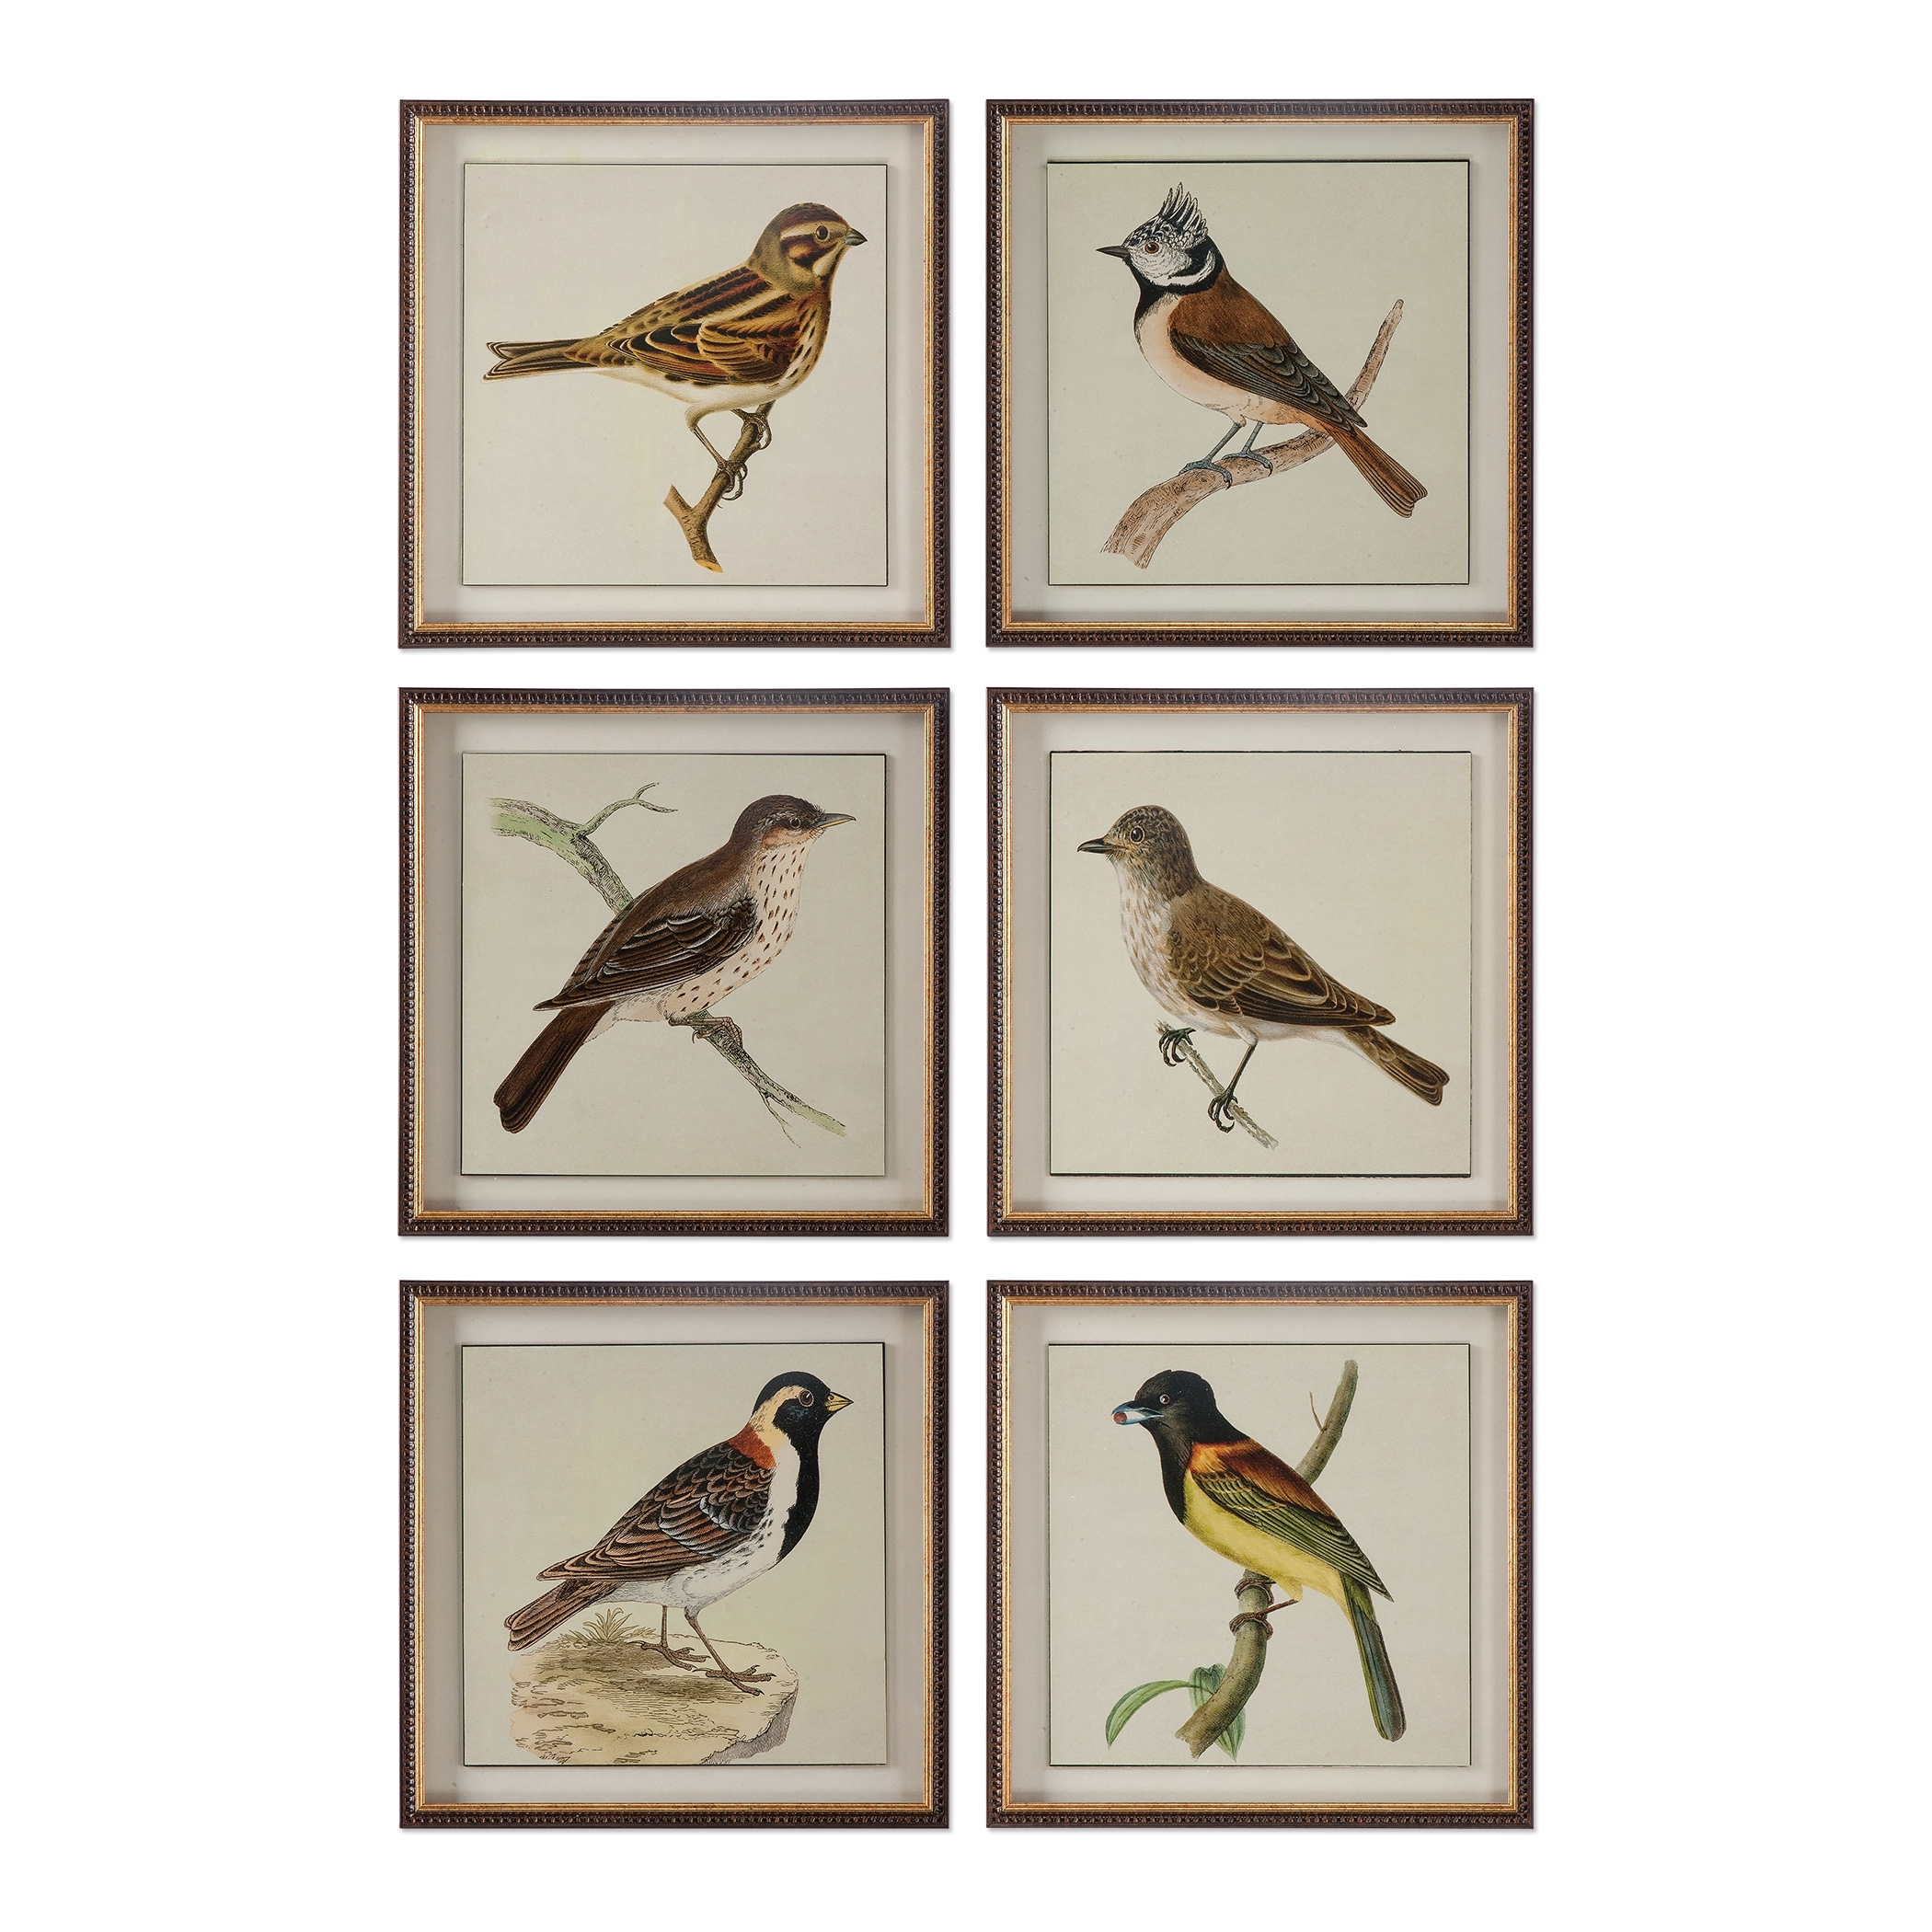 Uttermost Art Spring Soldiers Bird Prints, S/6 - Item Number: 33627